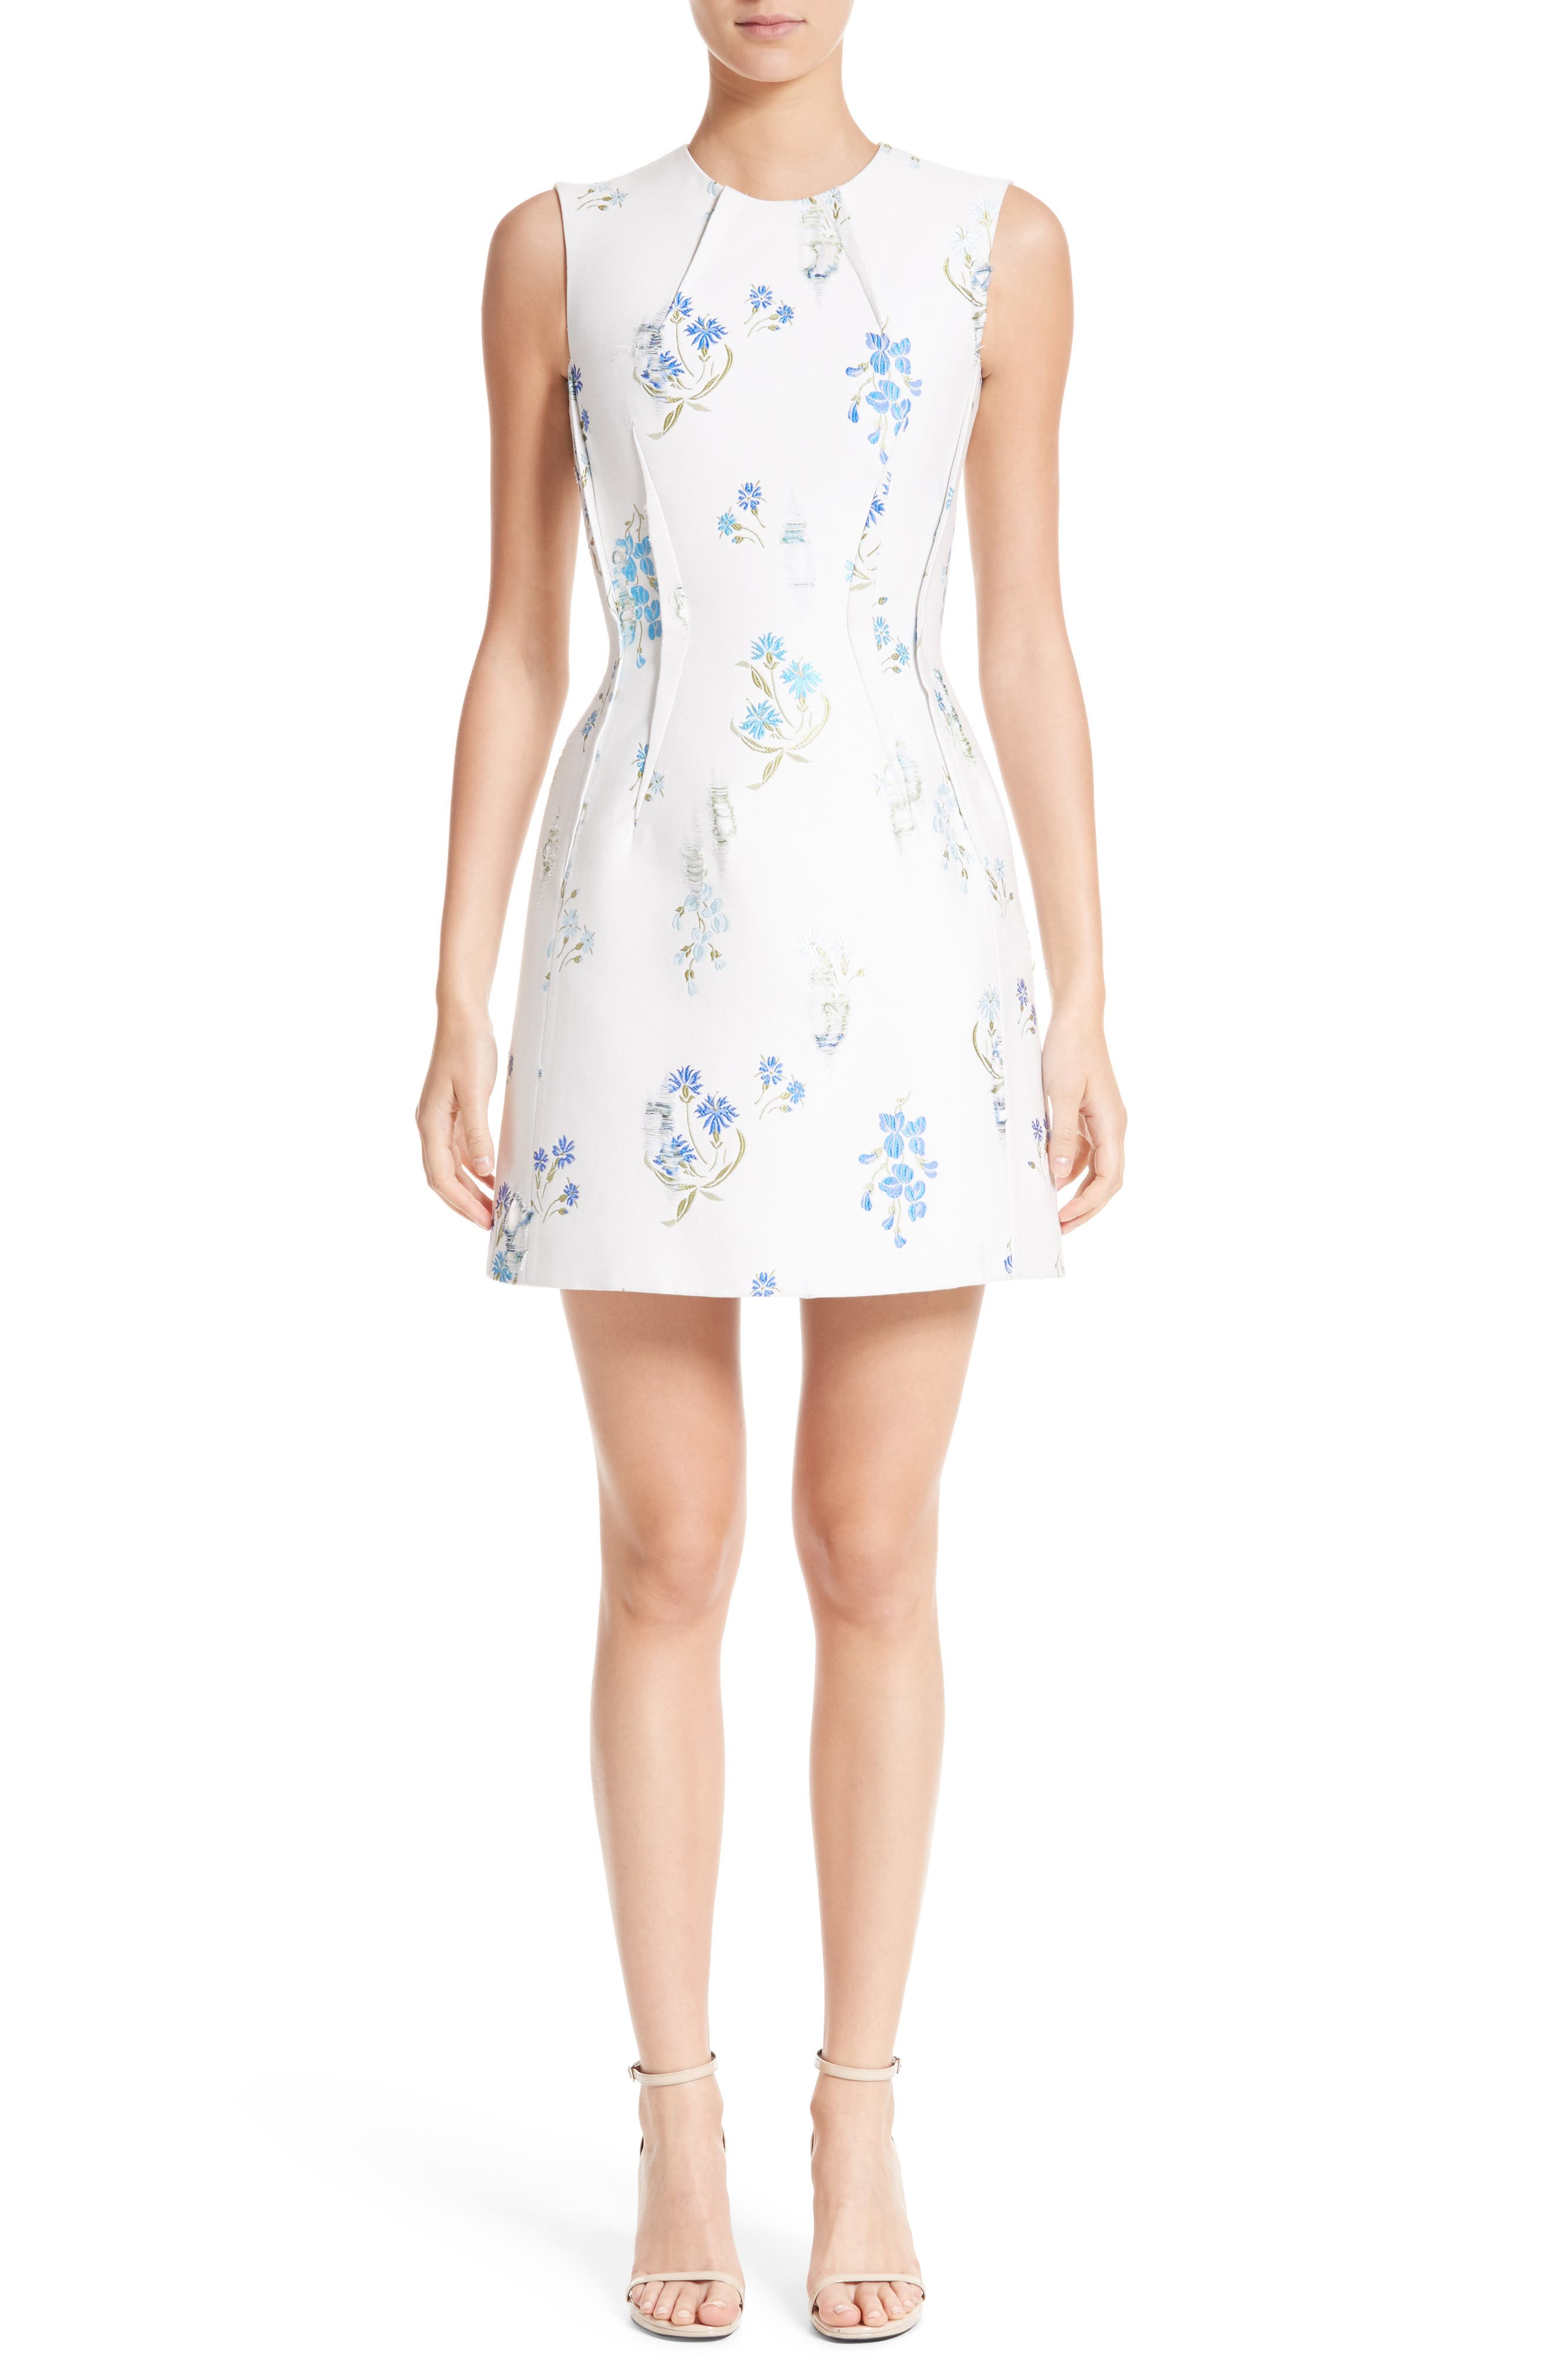 Alternate Image 1 Selected - Versace Collection Distressed Floral Jacquard Fit & Flare Dress